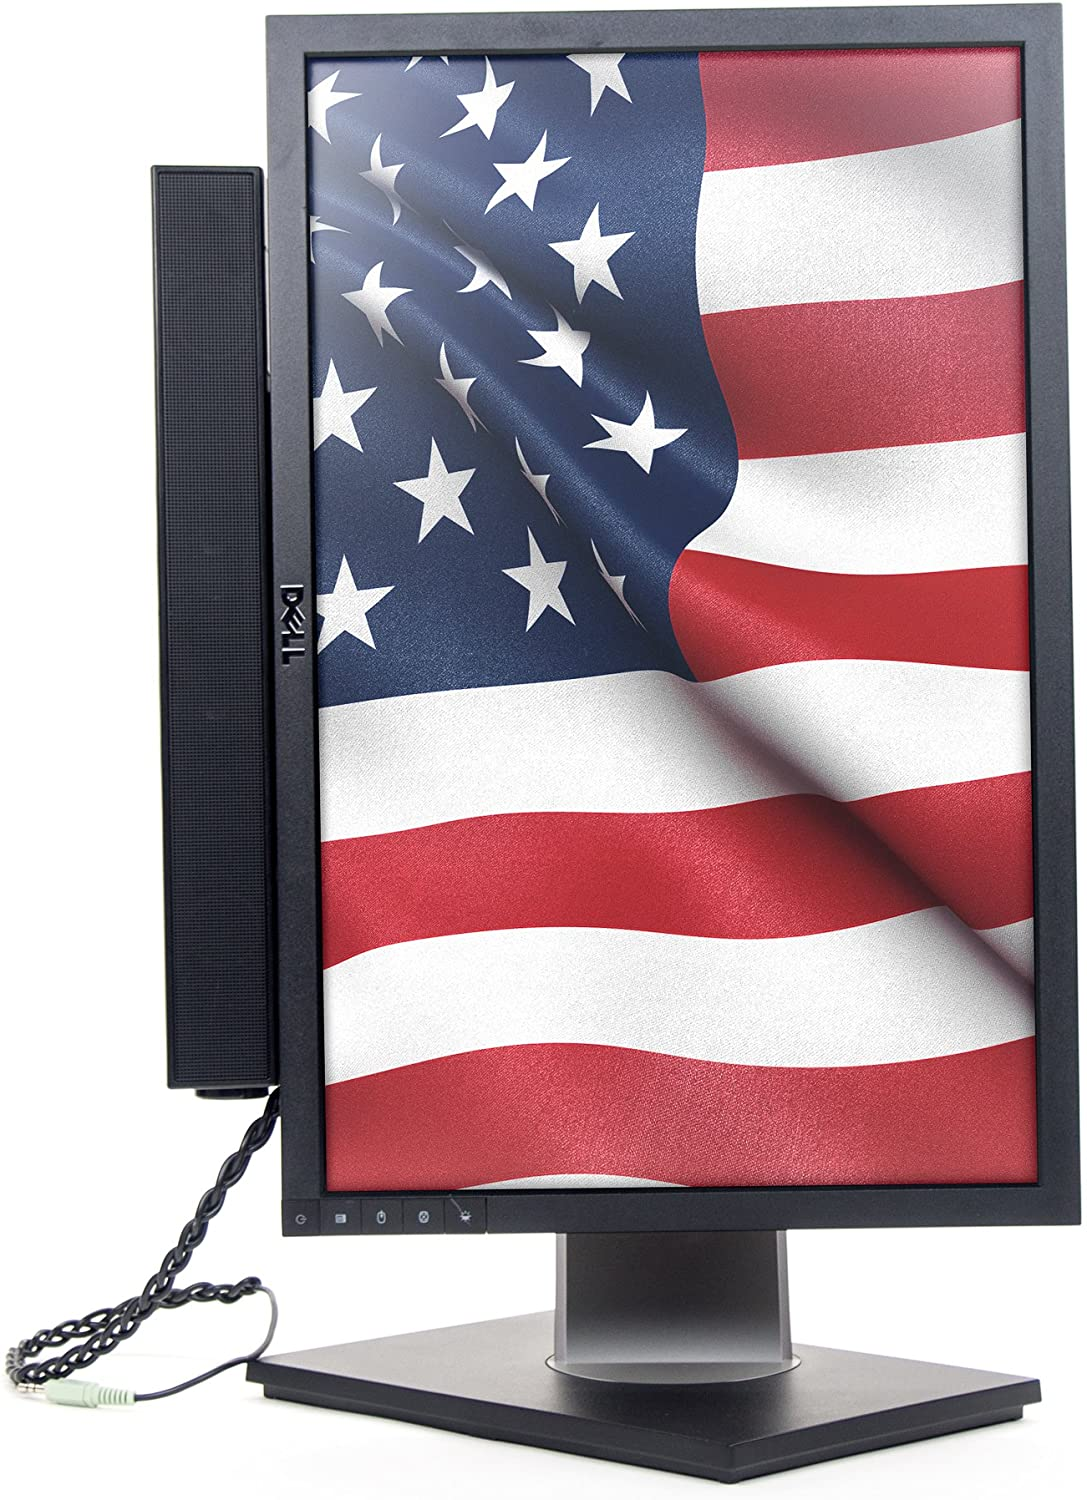 Dell Free shipping / New We OFFer at cheap prices UltraSharp 1909W - LCD 19